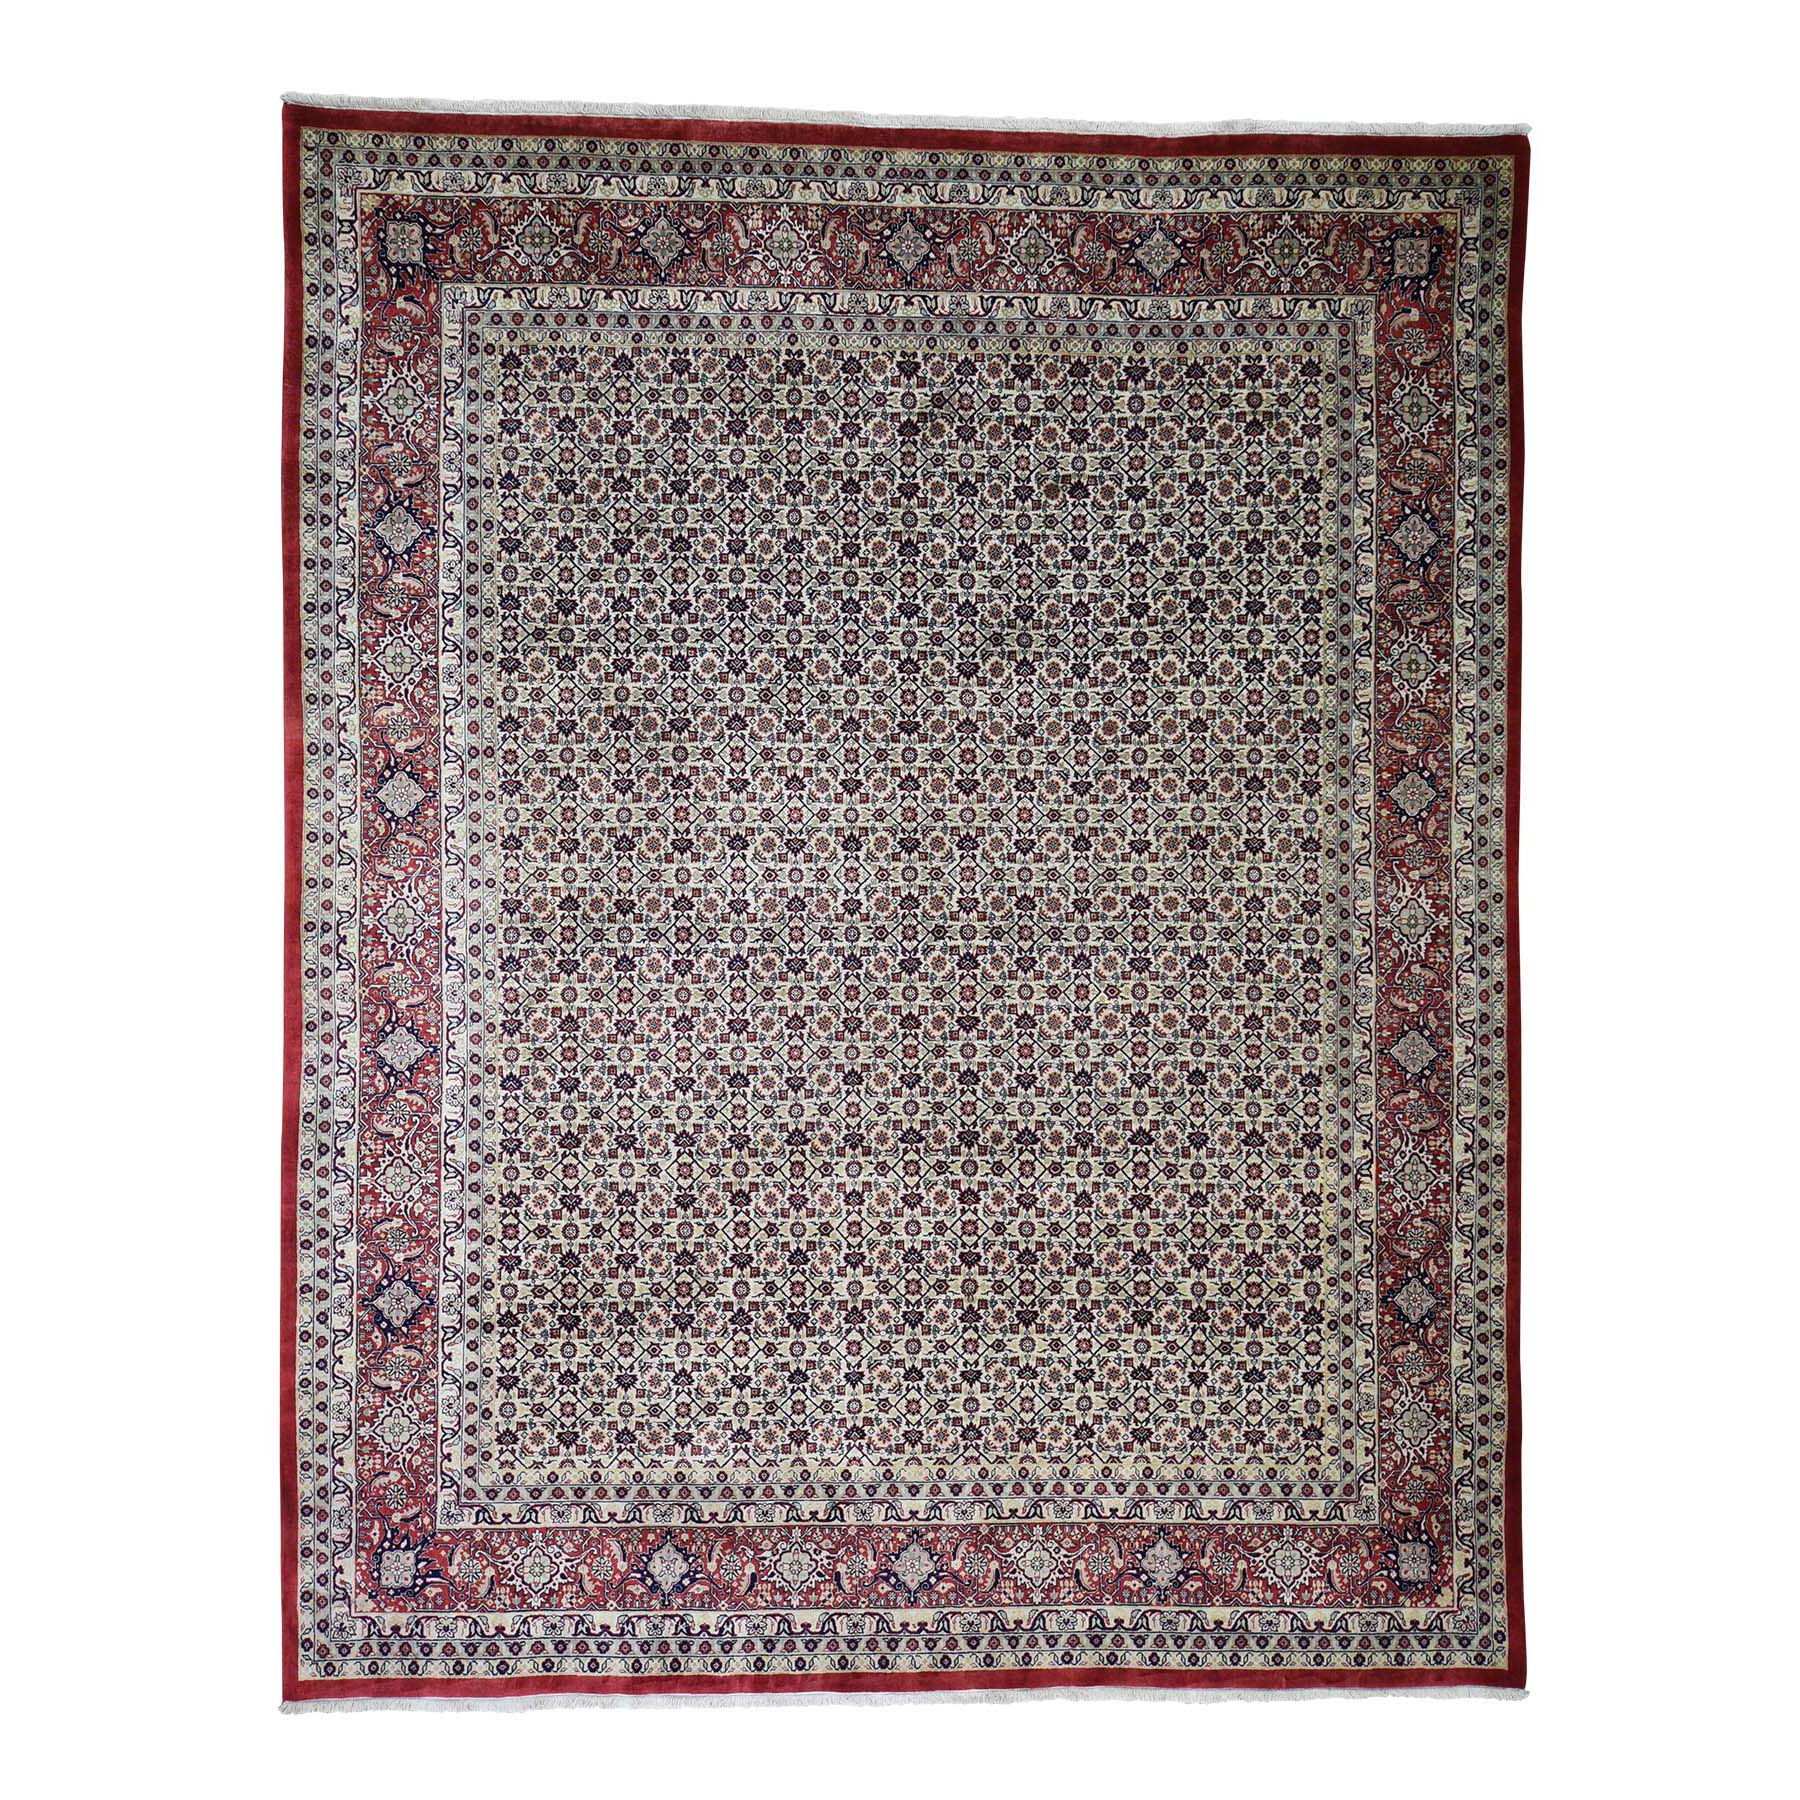 8'x10' Super Fine Bijar 300 Kpsi All Over Design Hand-Knotted Oriental Rug